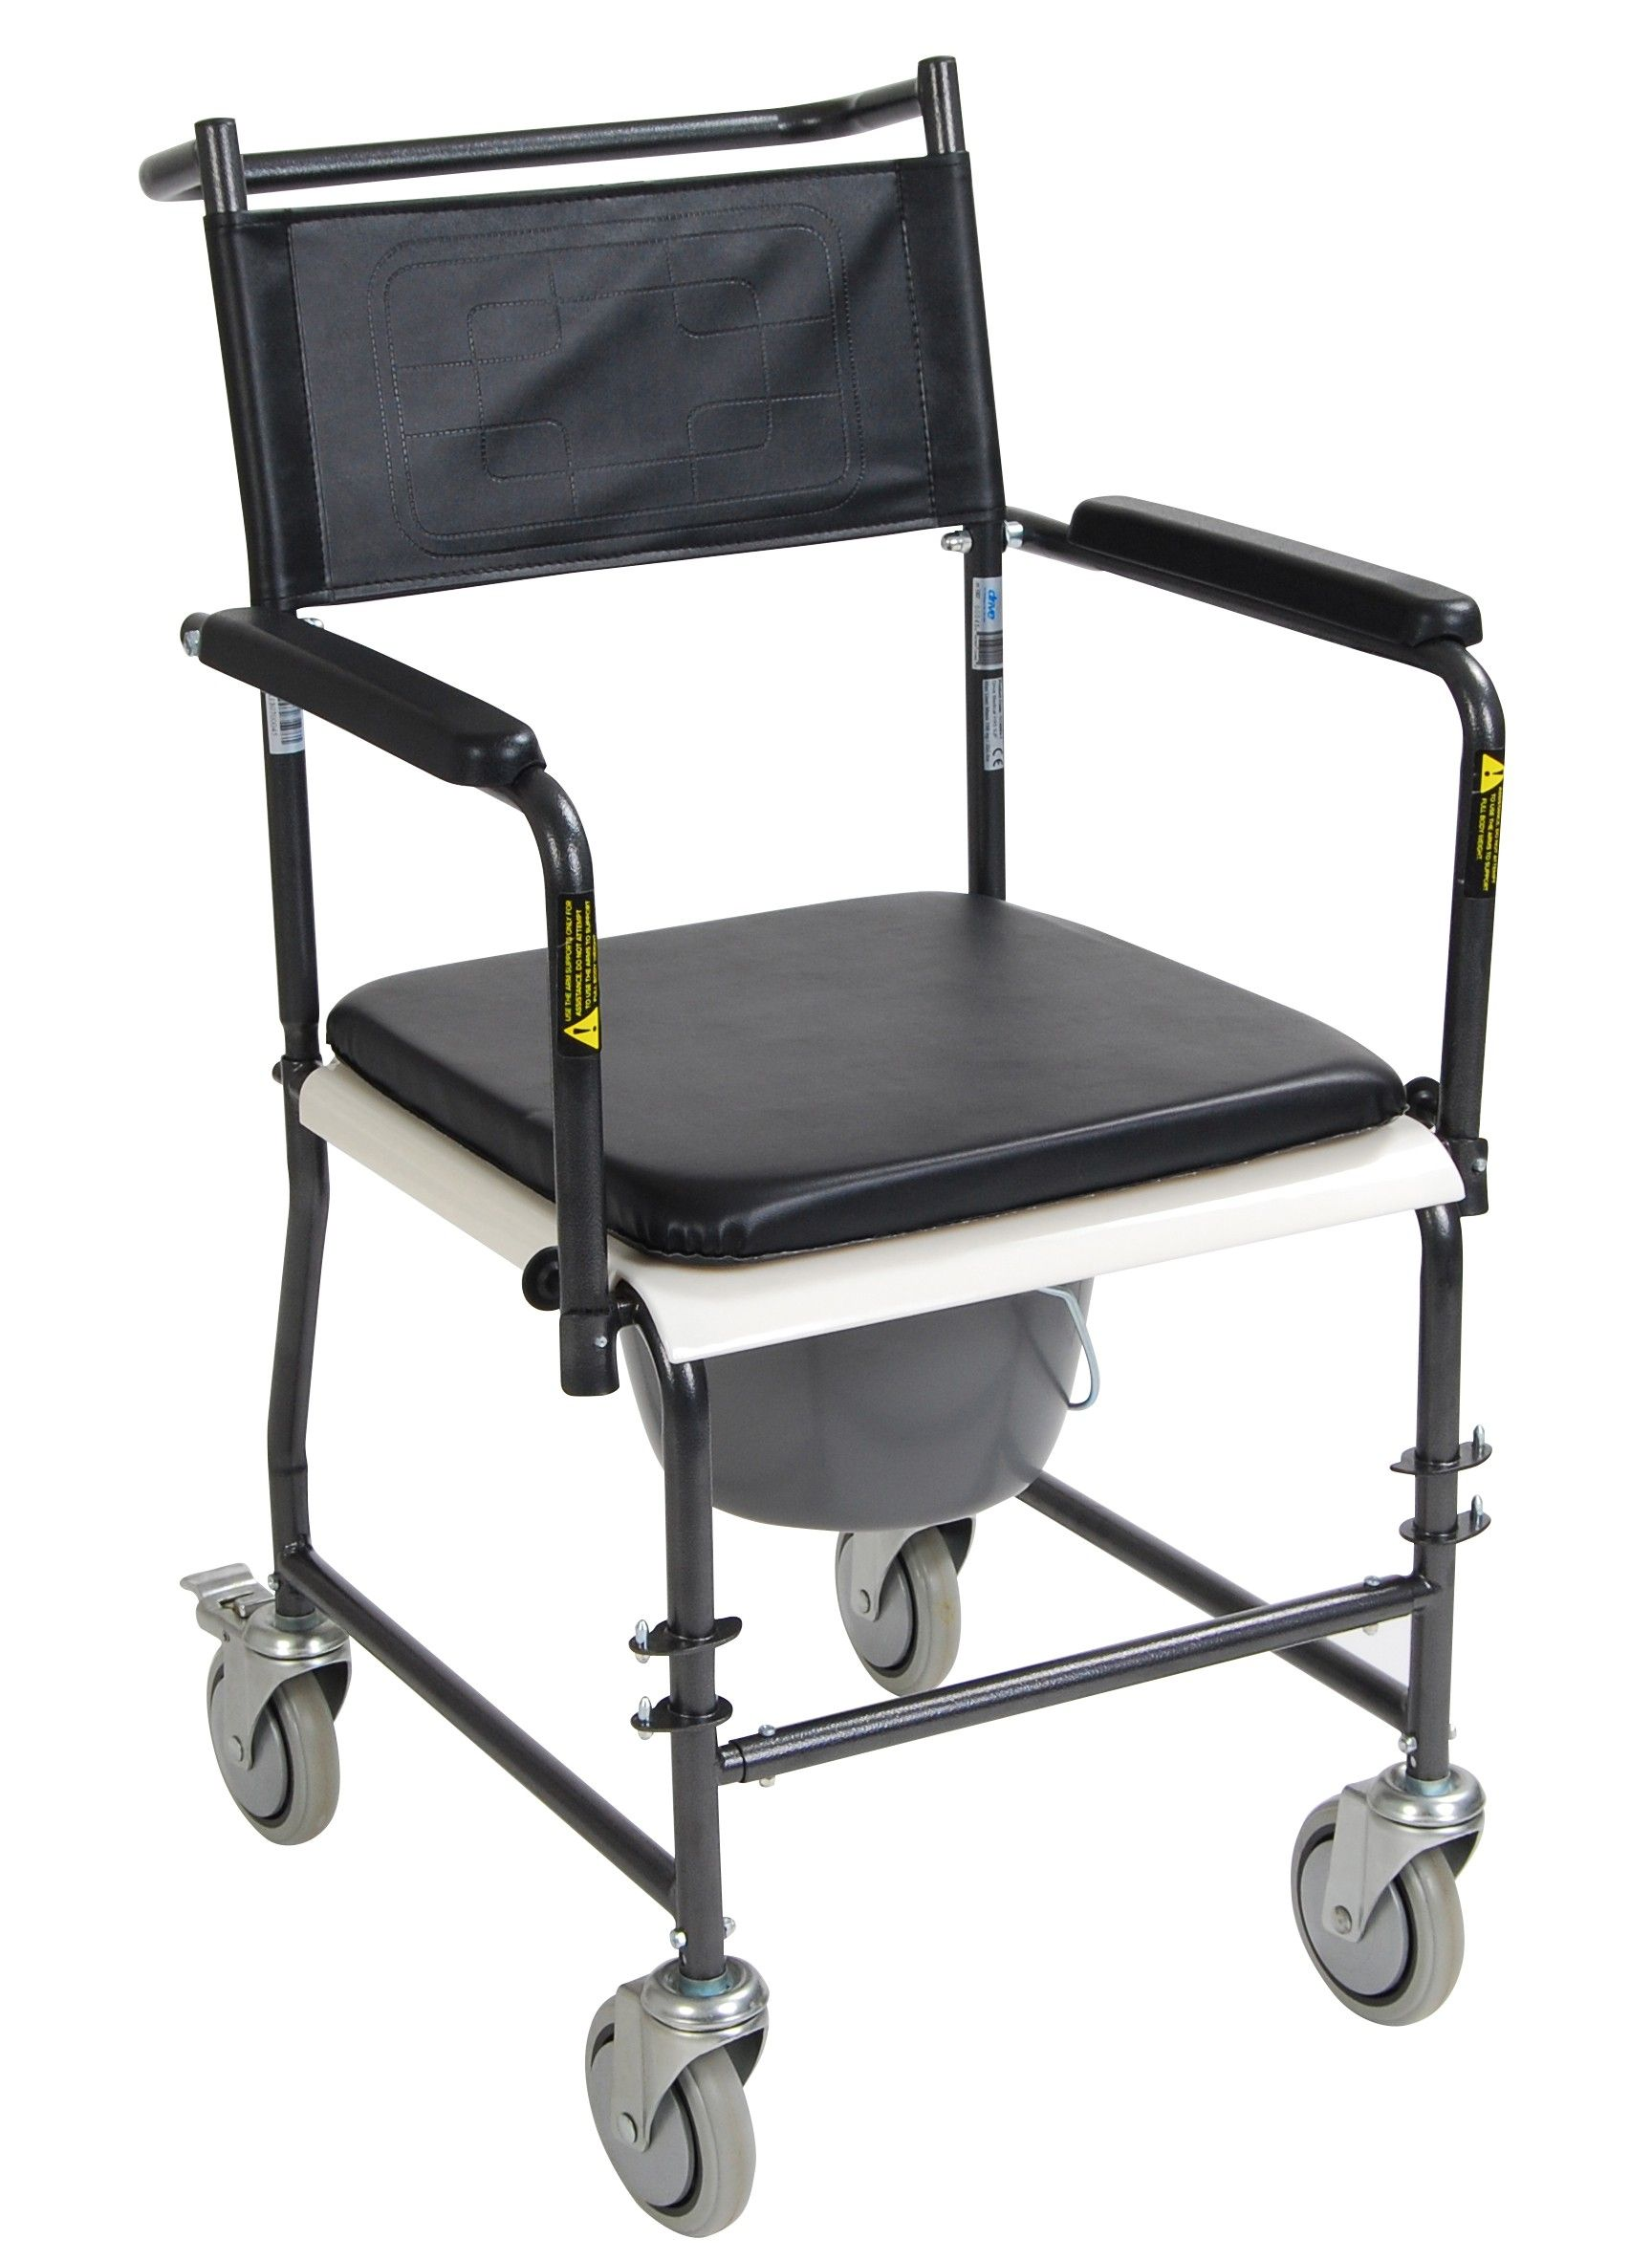 Packed with features, the portable upholstered wheeled